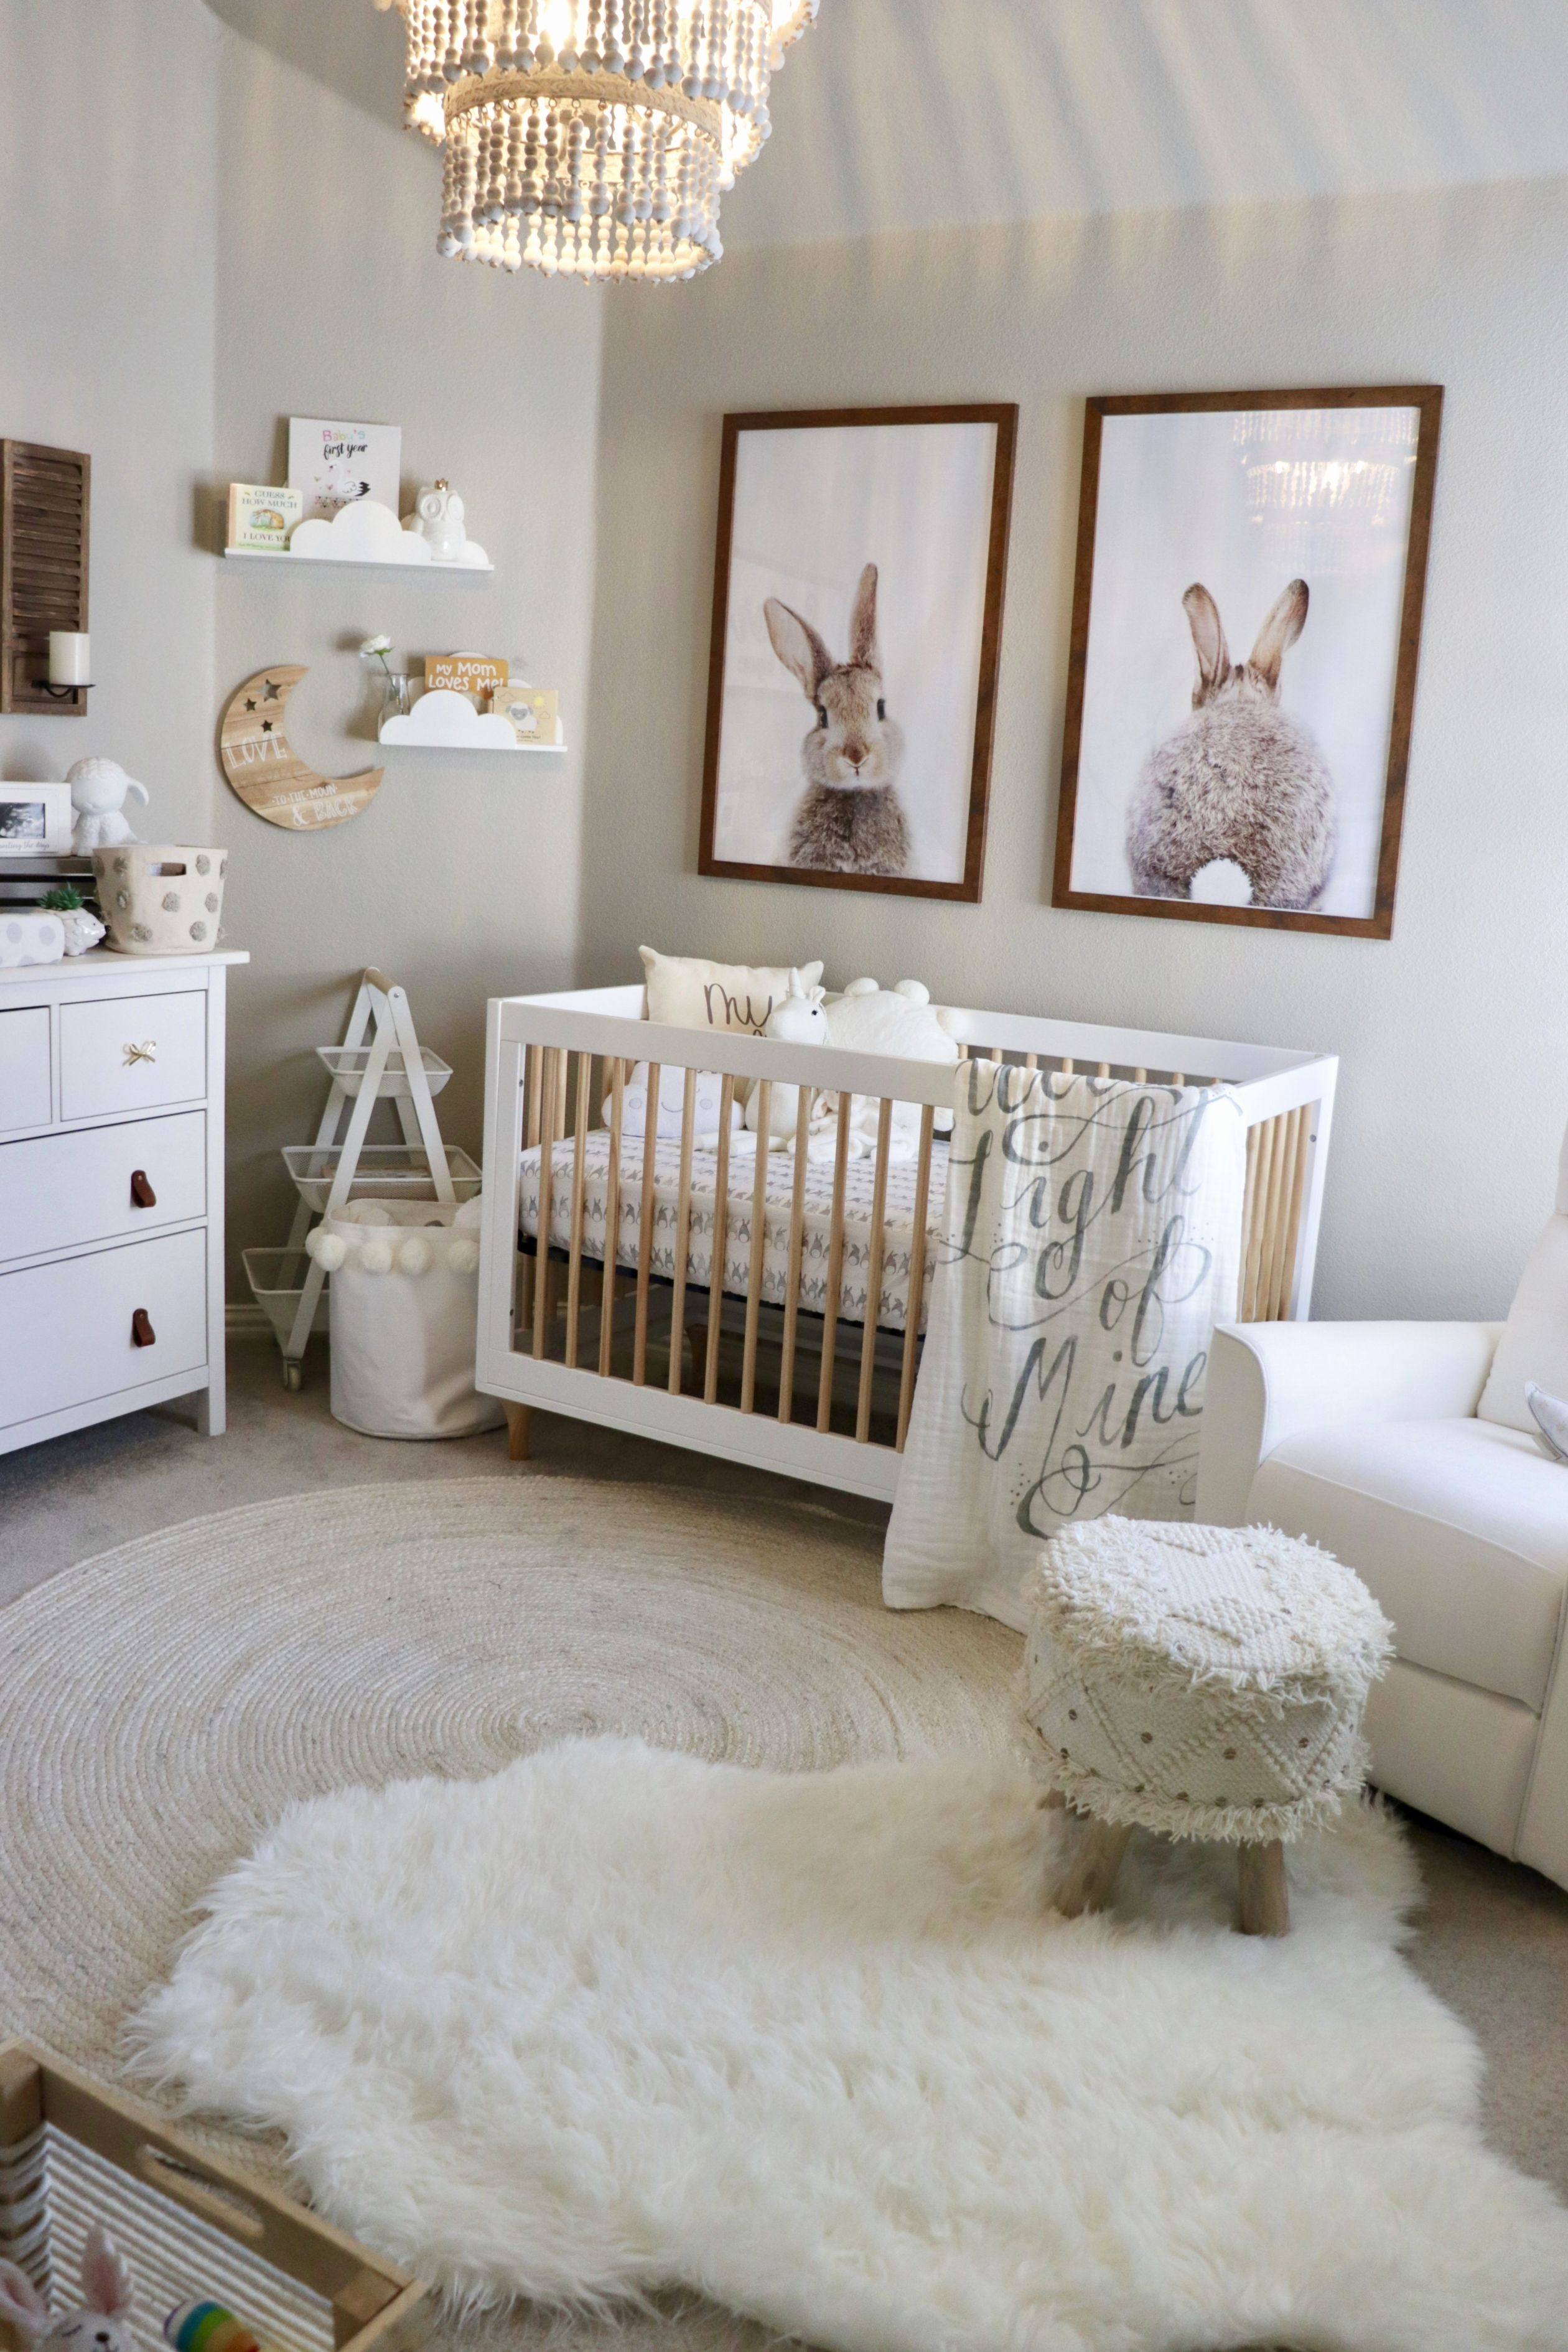 Take Bunny Inspiration For One Of The Bedrooms Maybe Each Room